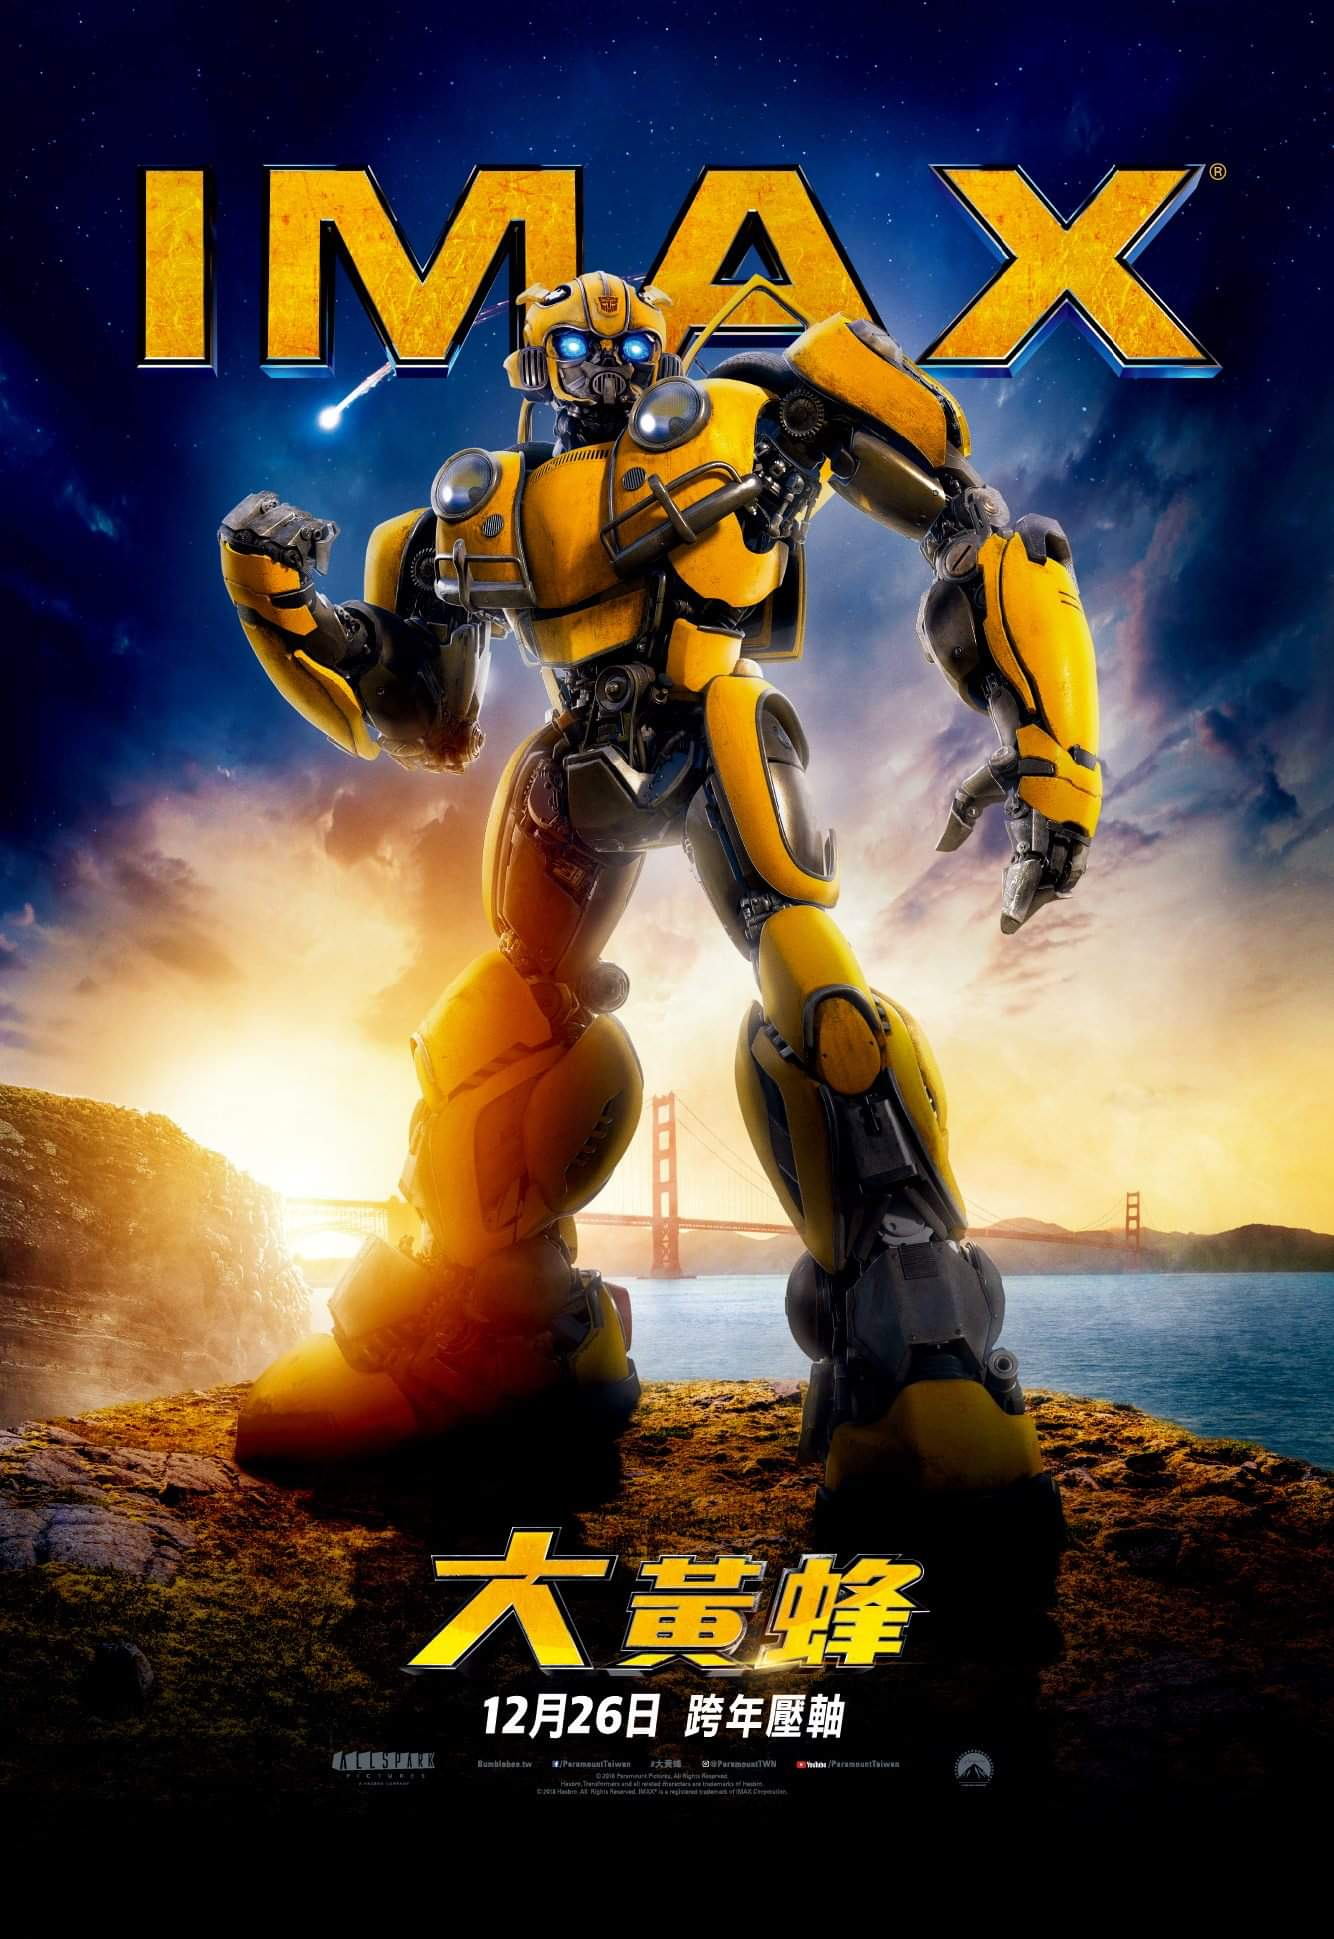 poster bumblebee movie imax transformers paramount trailer taiwan date chinese tfw2005 2005 china december promotional azt 2235 discuss boards credit